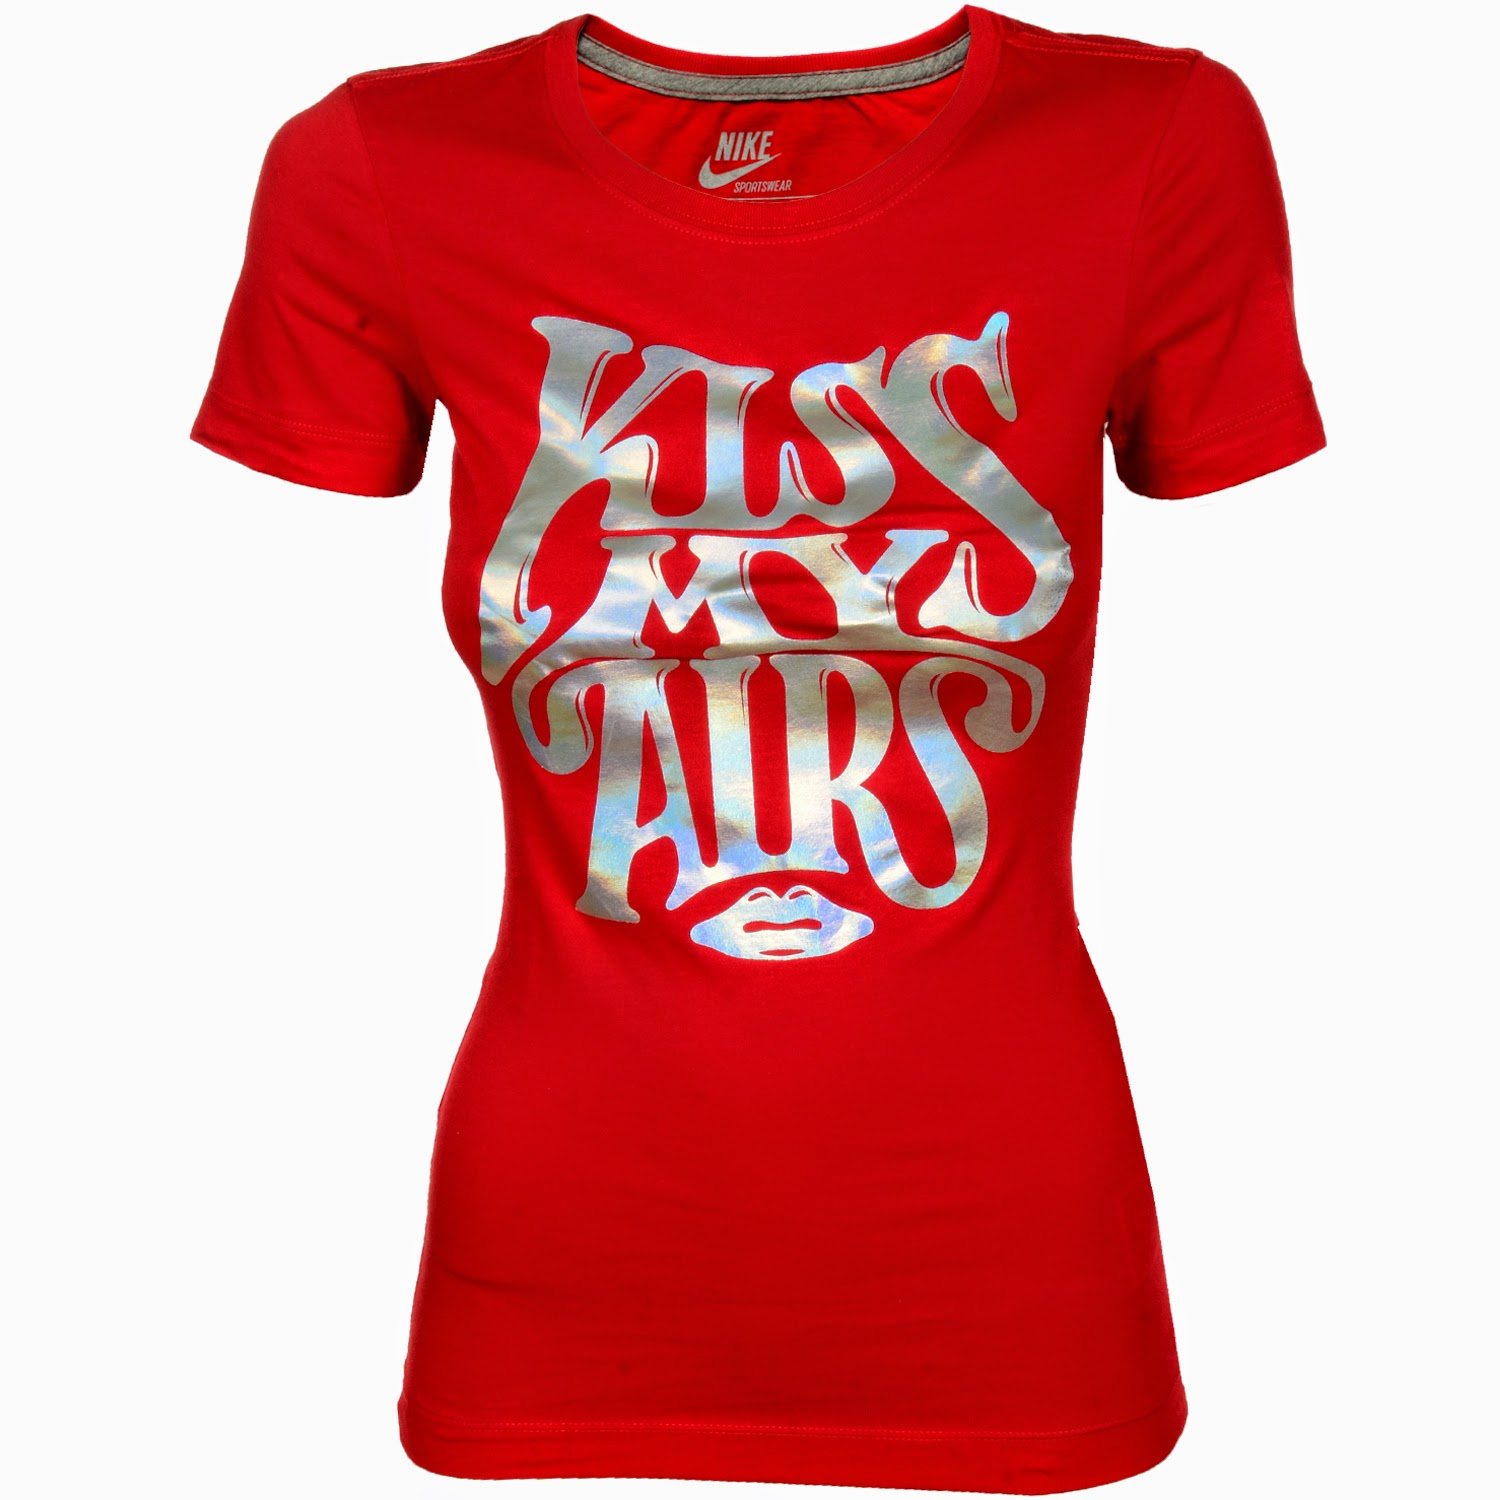 Nike Shirt Sayings Women   Viewing Gallery